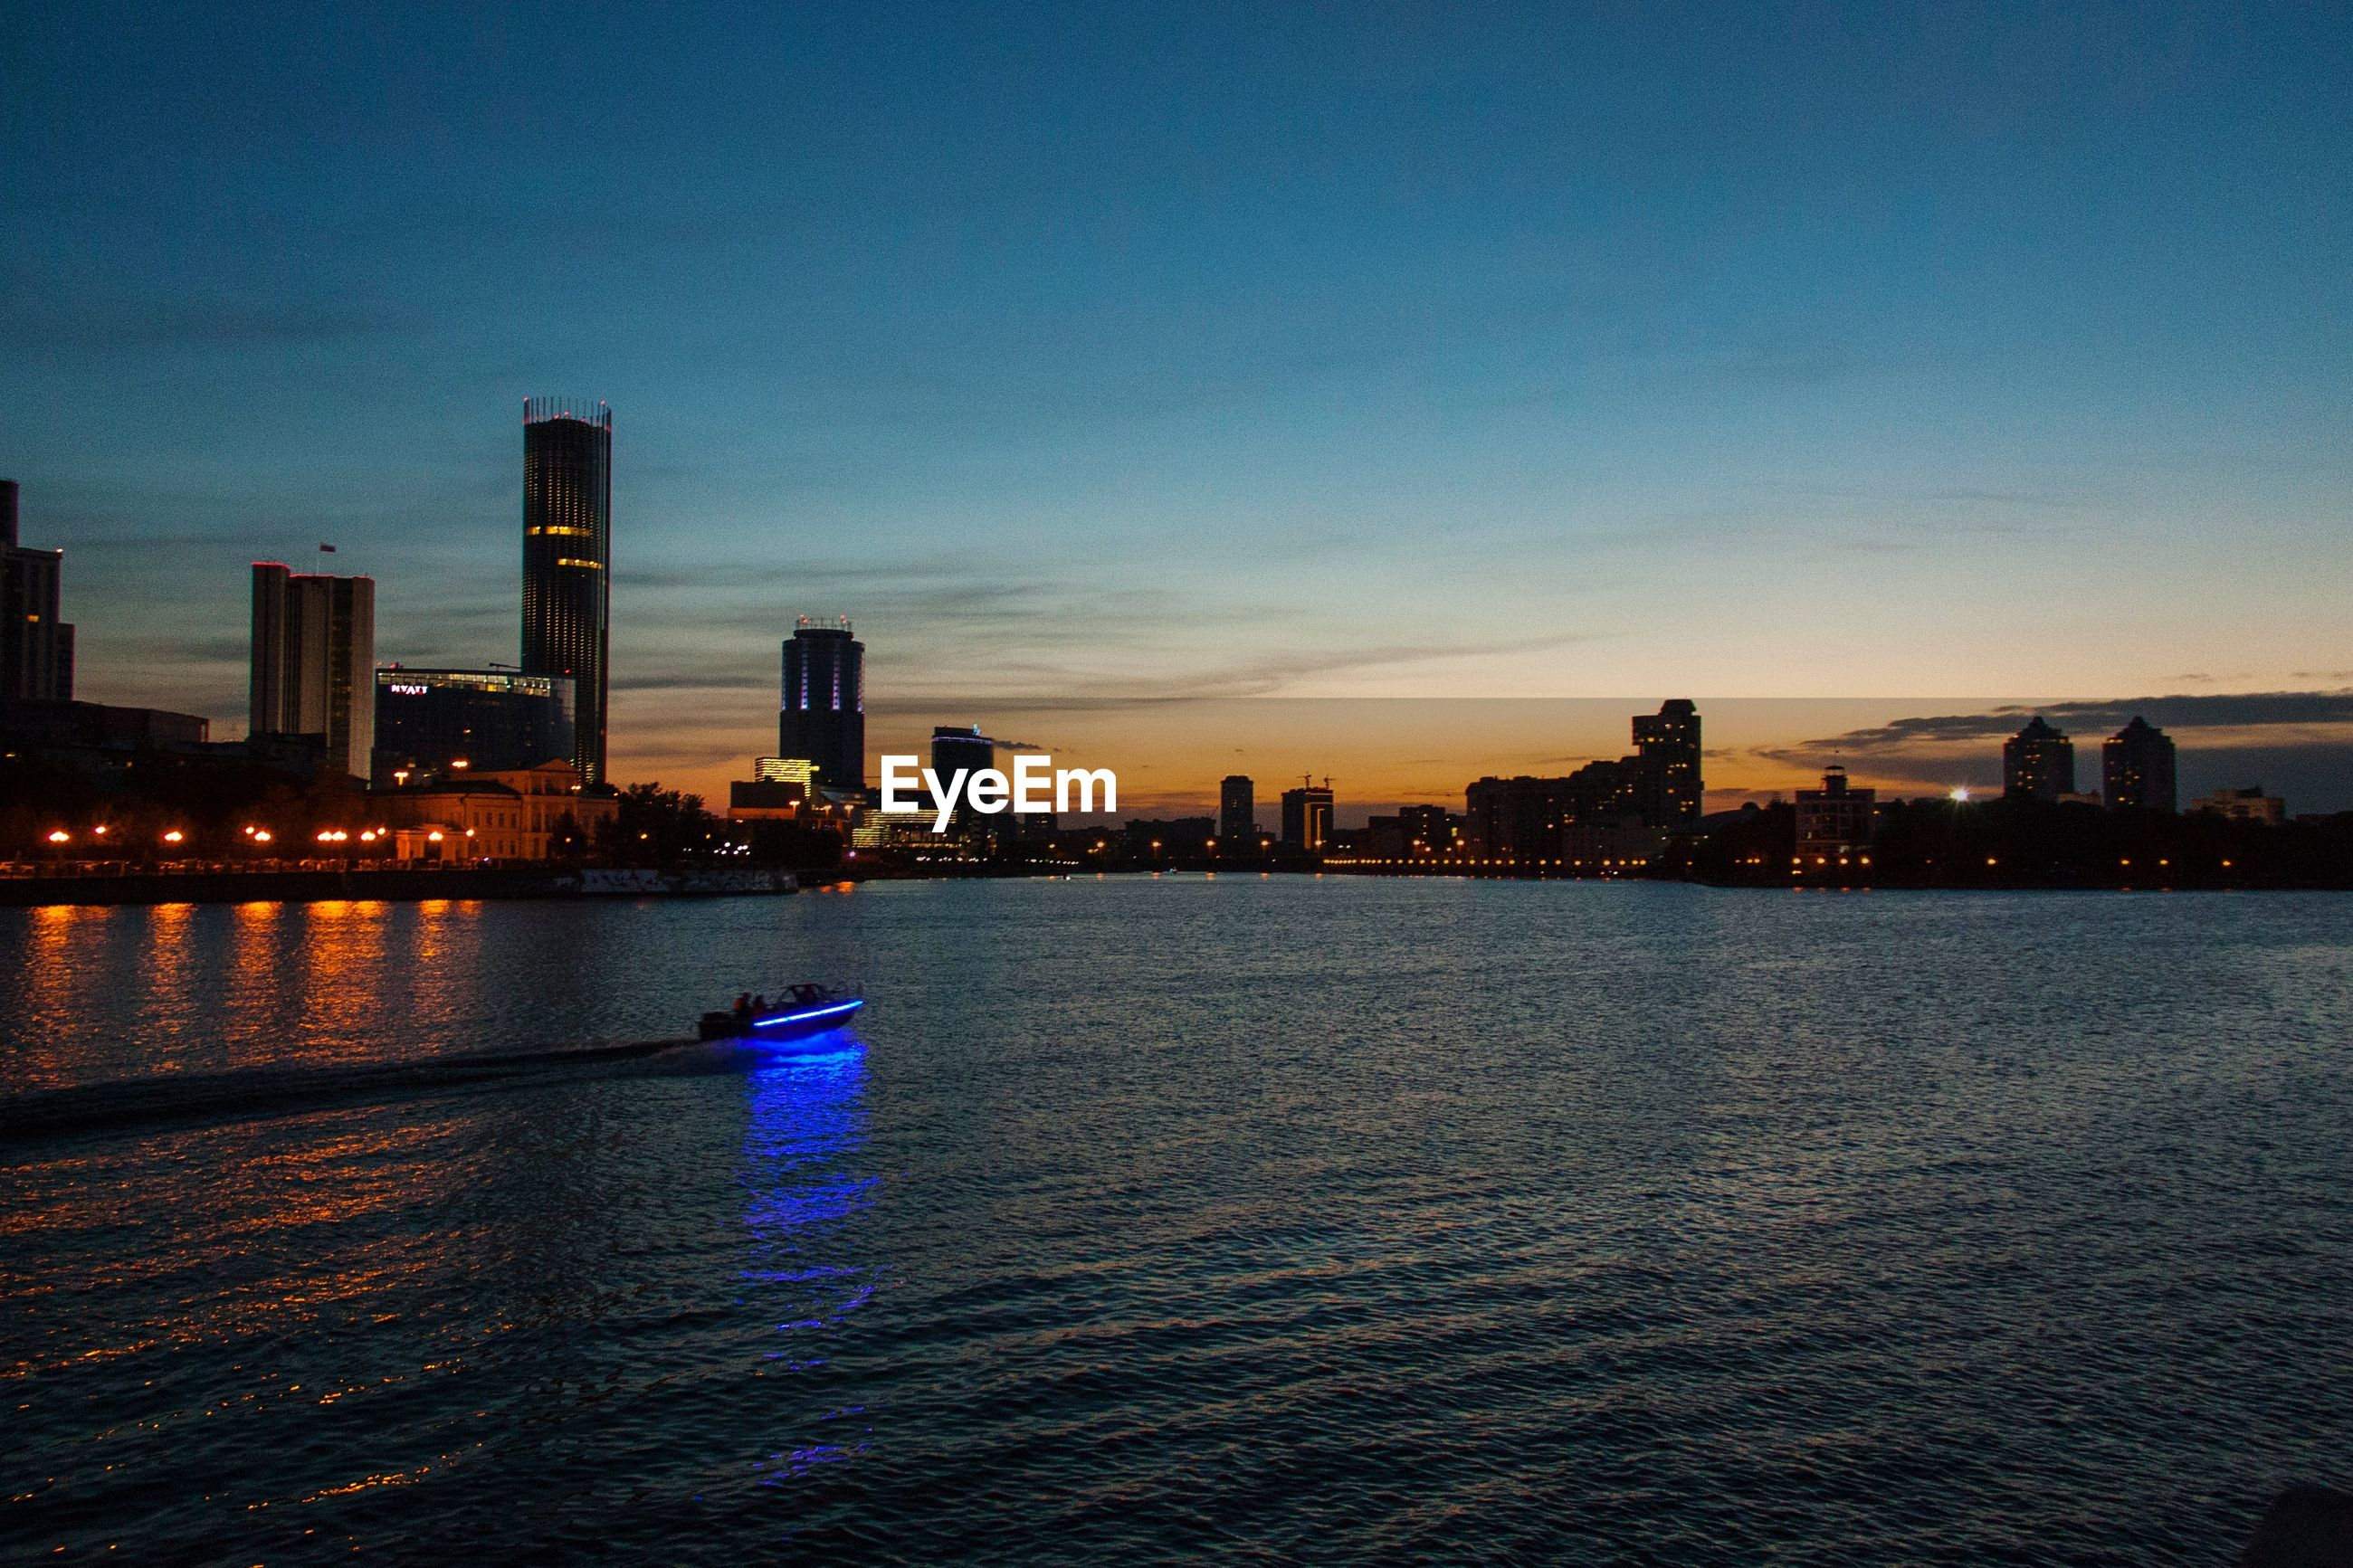 RIVER BY ILLUMINATED CITY BUILDINGS AGAINST SKY AT SUNSET